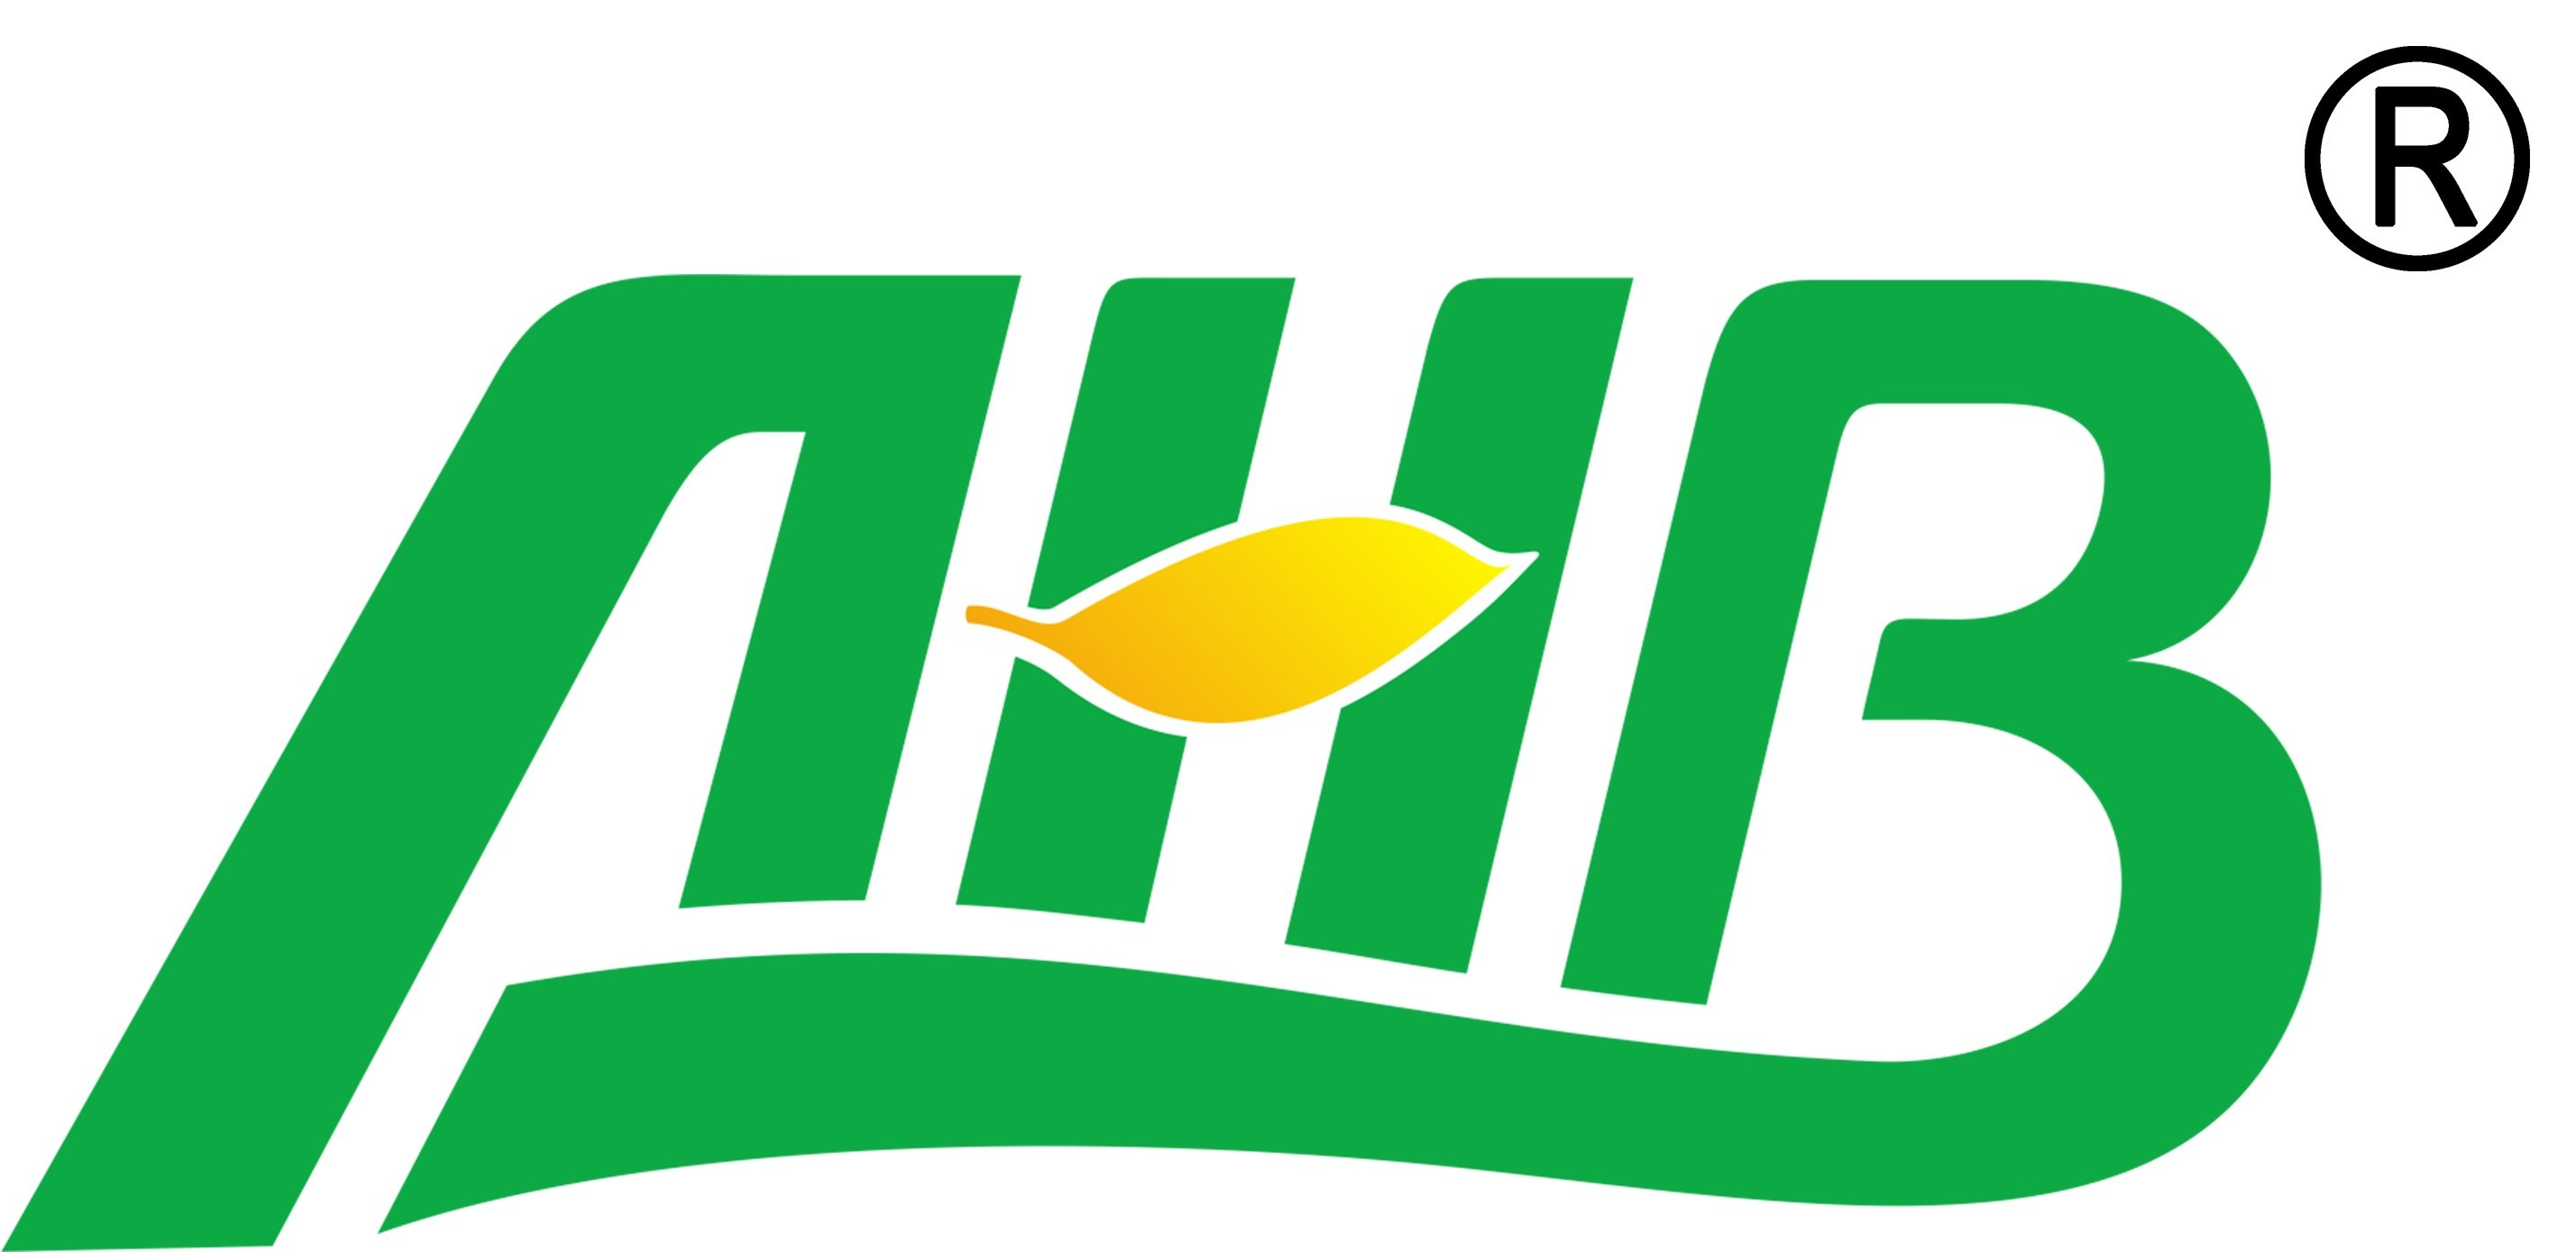 Anhui Huaheng Biotechnology Co., Ltd